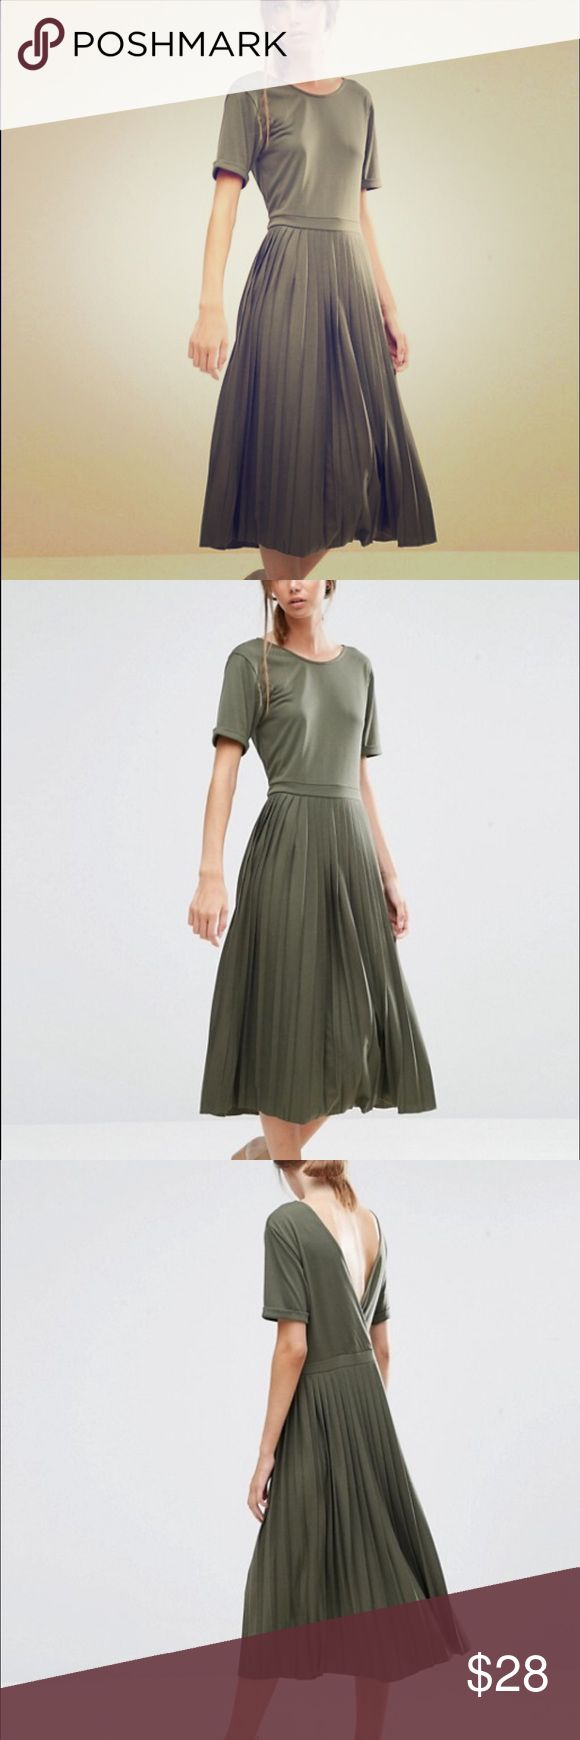 ASOS PLEATED MIDI DRESS ASOS pleated midi dress in Army Green. Worn once. Good condition. ASOS Dresses Midi